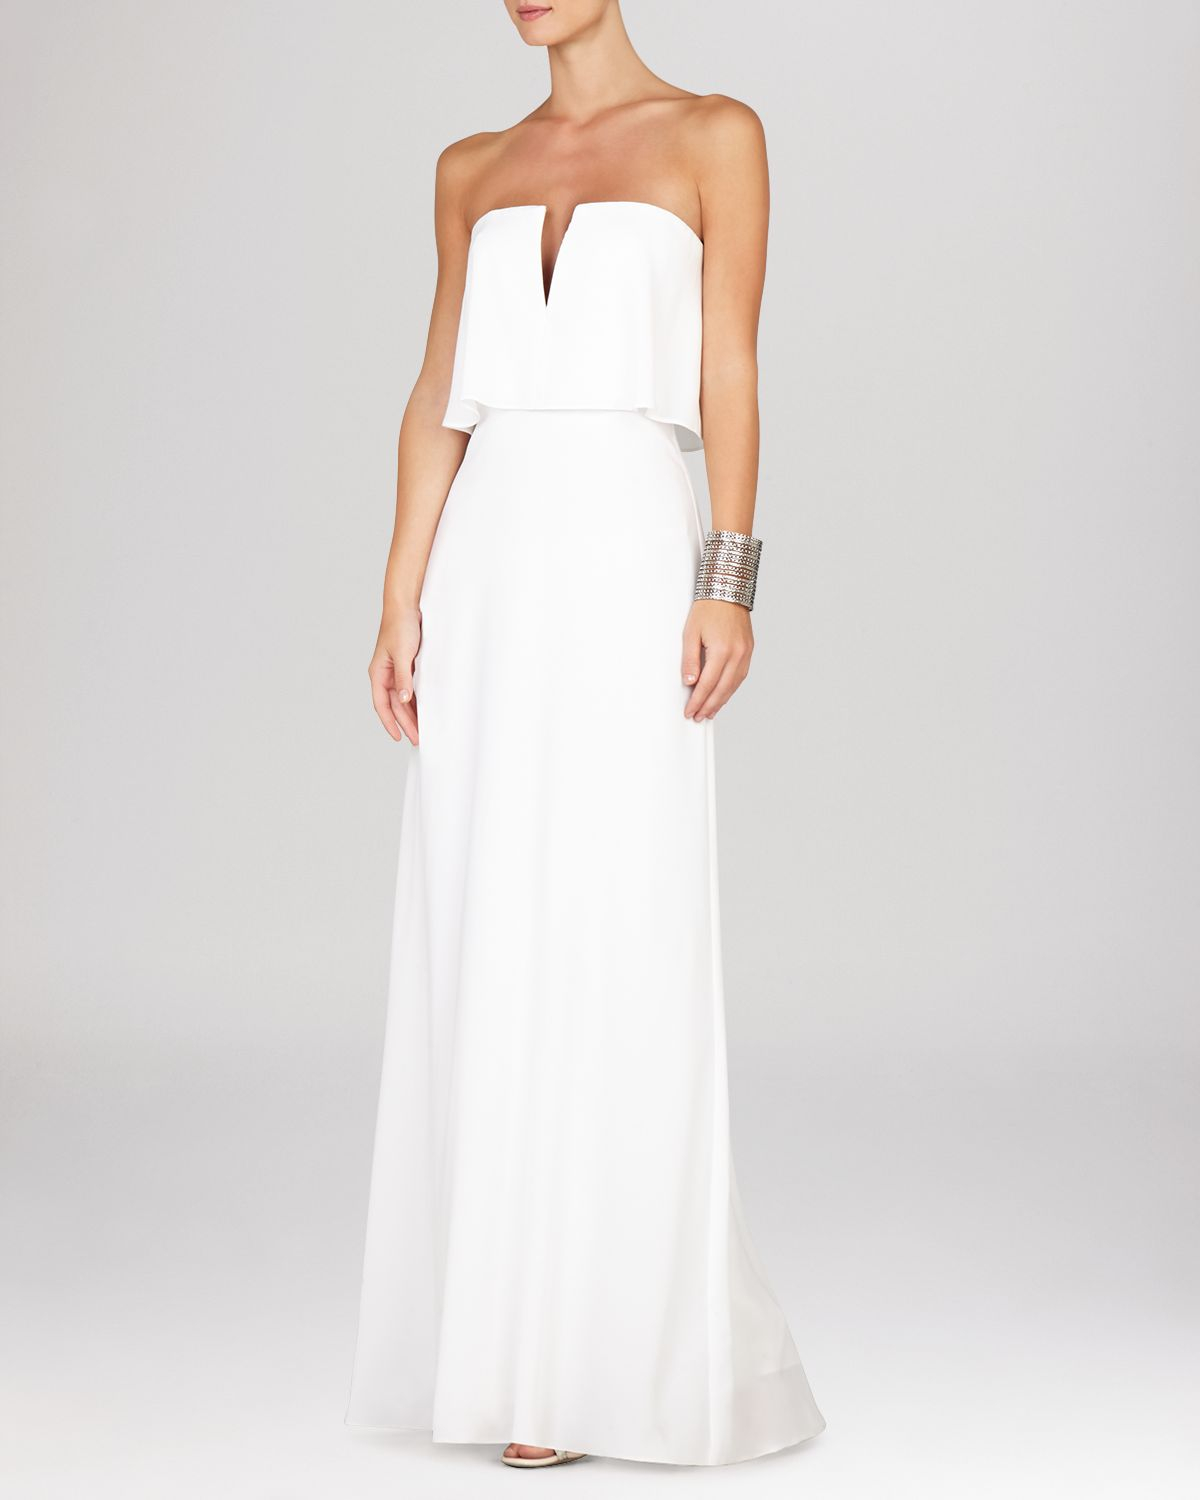 42520a18475 BCBGMAXAZRIA Gown - Alyse Strapless Notched Blouson in White - Lyst